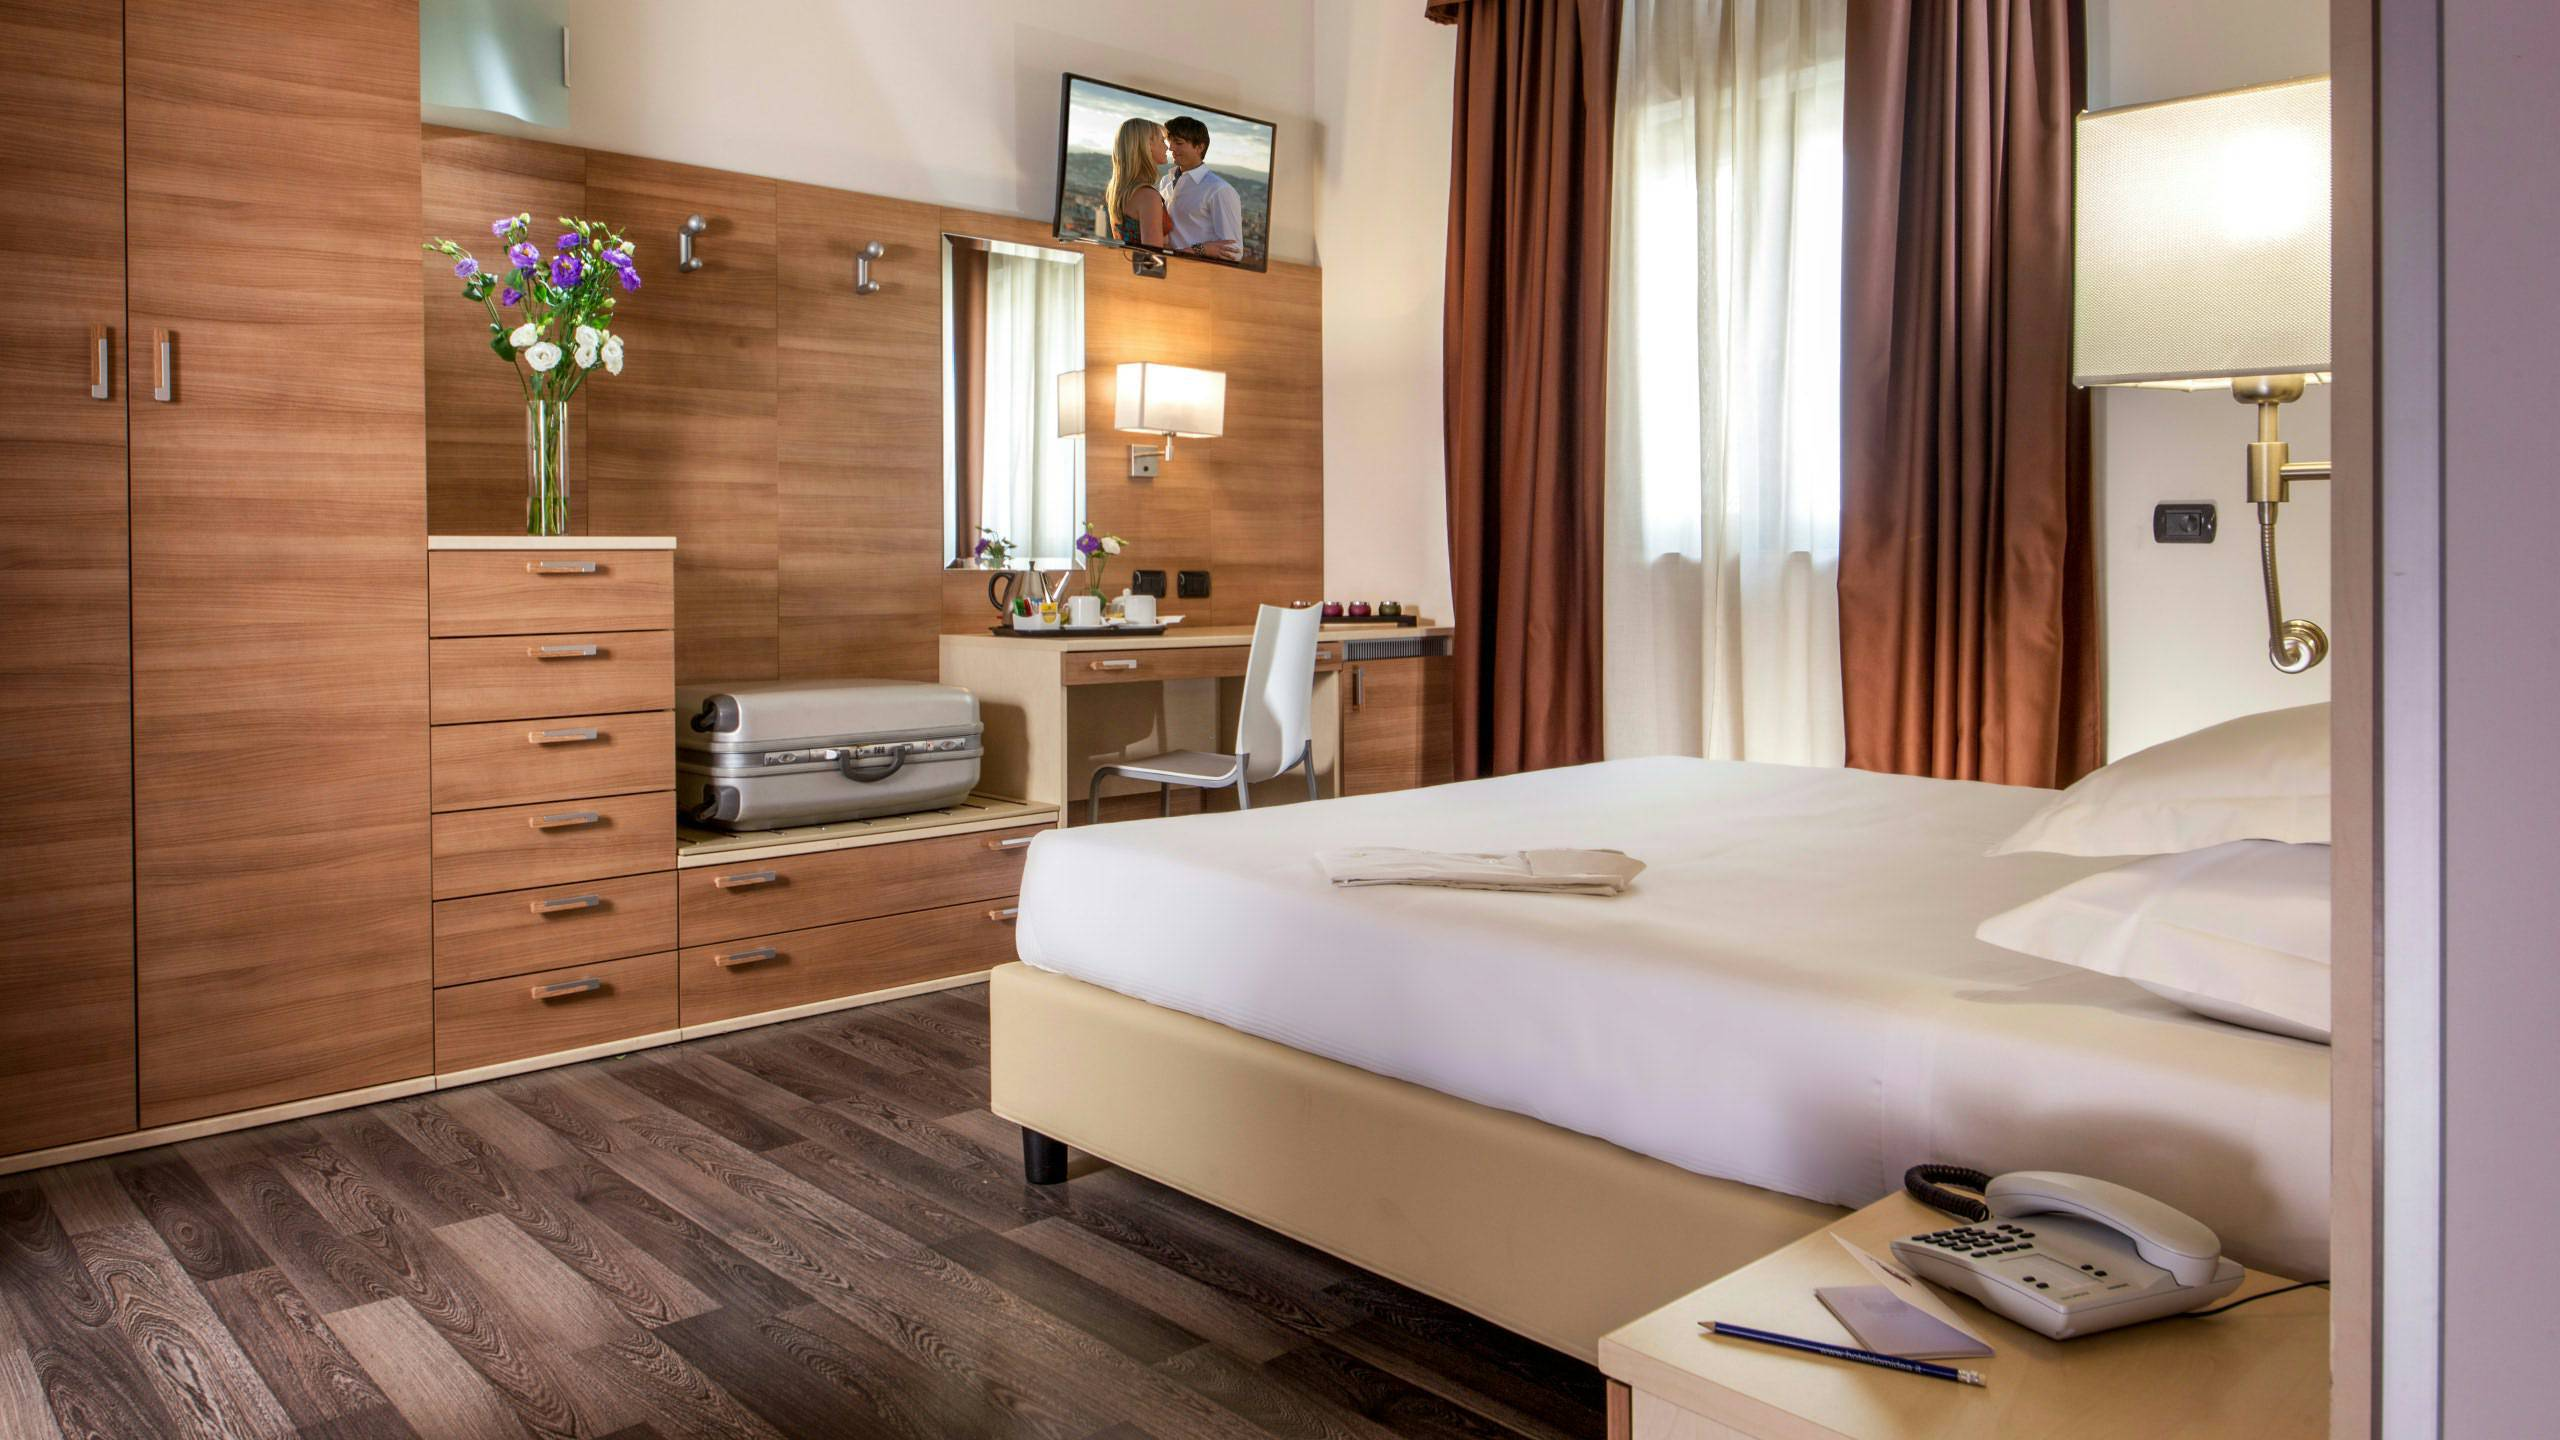 Domidea-Business-Hotel-Rome-rooms-09